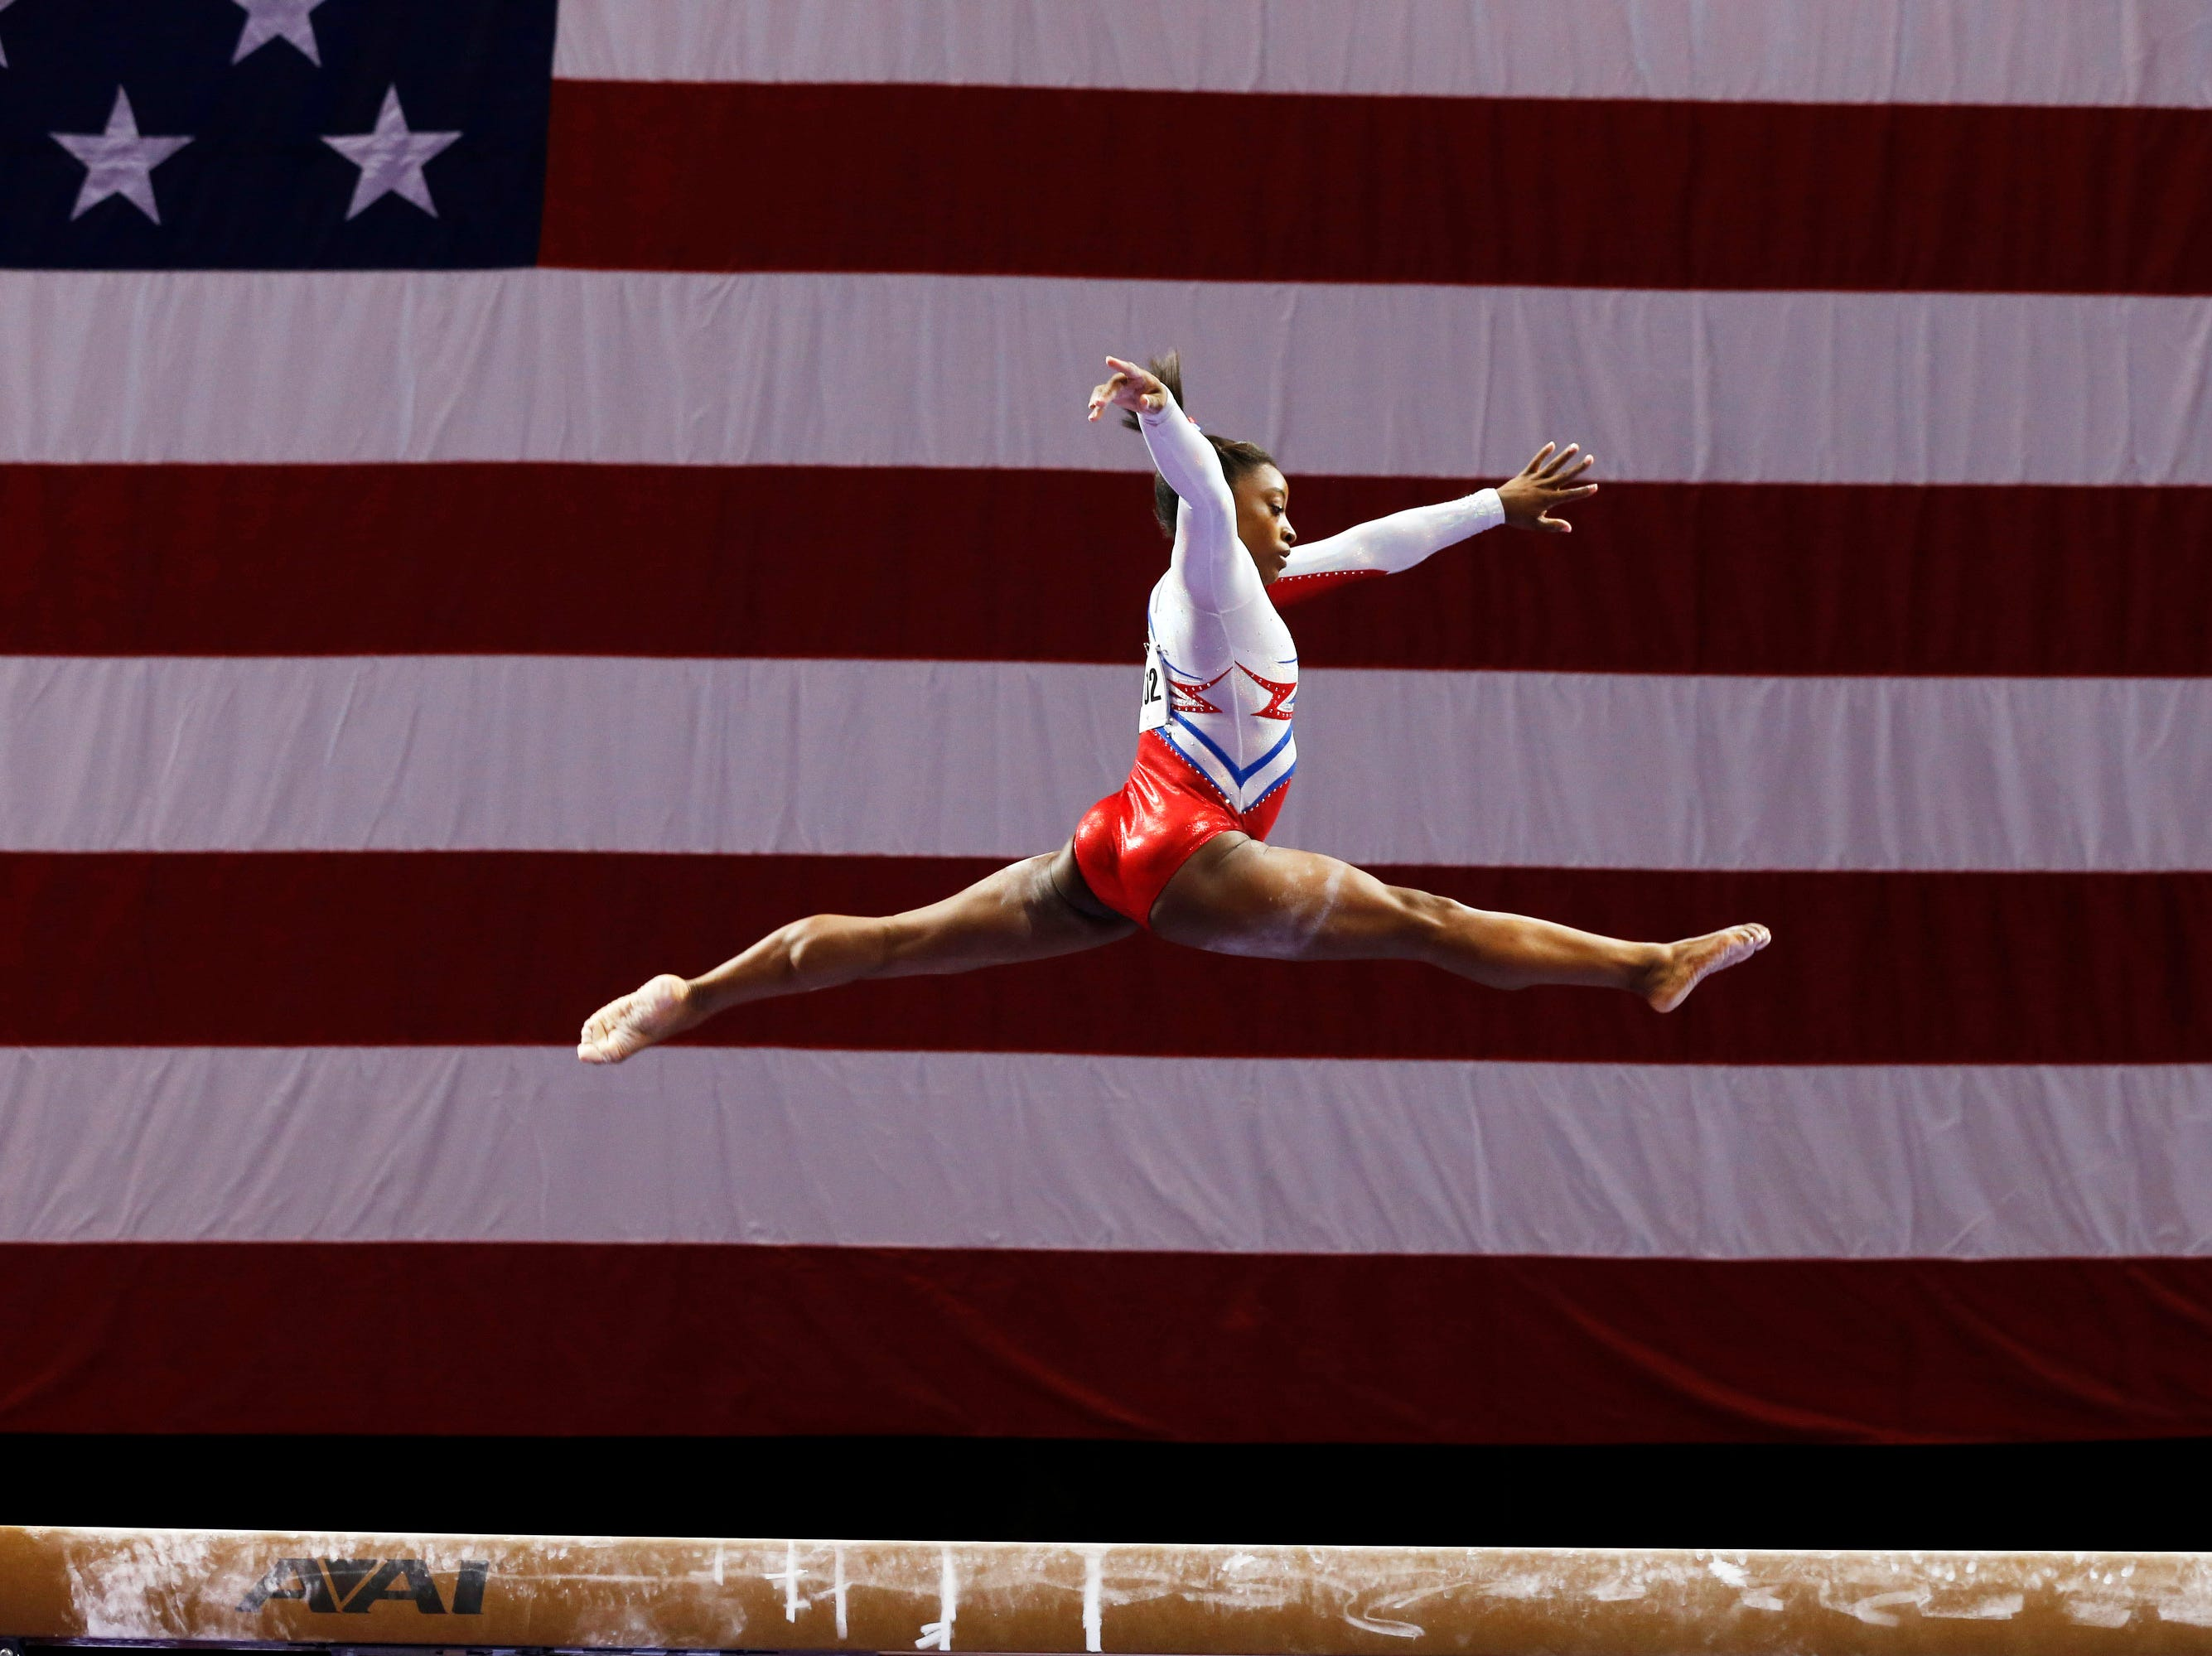 In 2013, Simone Biles won her first U.S. title on the balance beam during the P&G Gymnastics Championships.